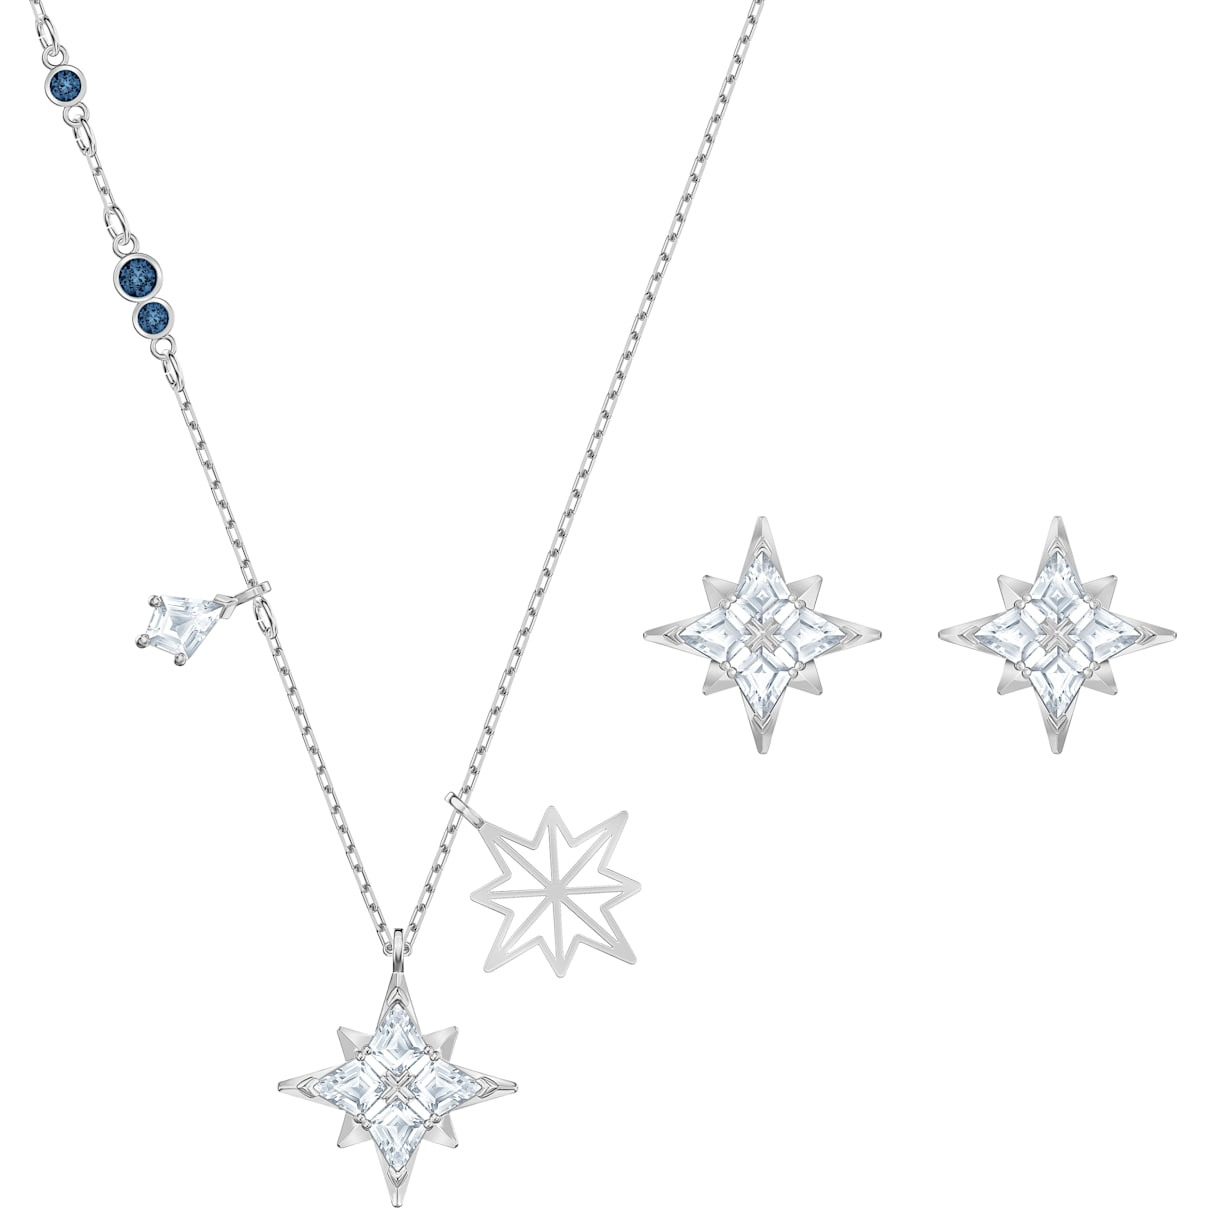 Swarovski Swarovski Symbolic Star Set, White, Rhodium plated